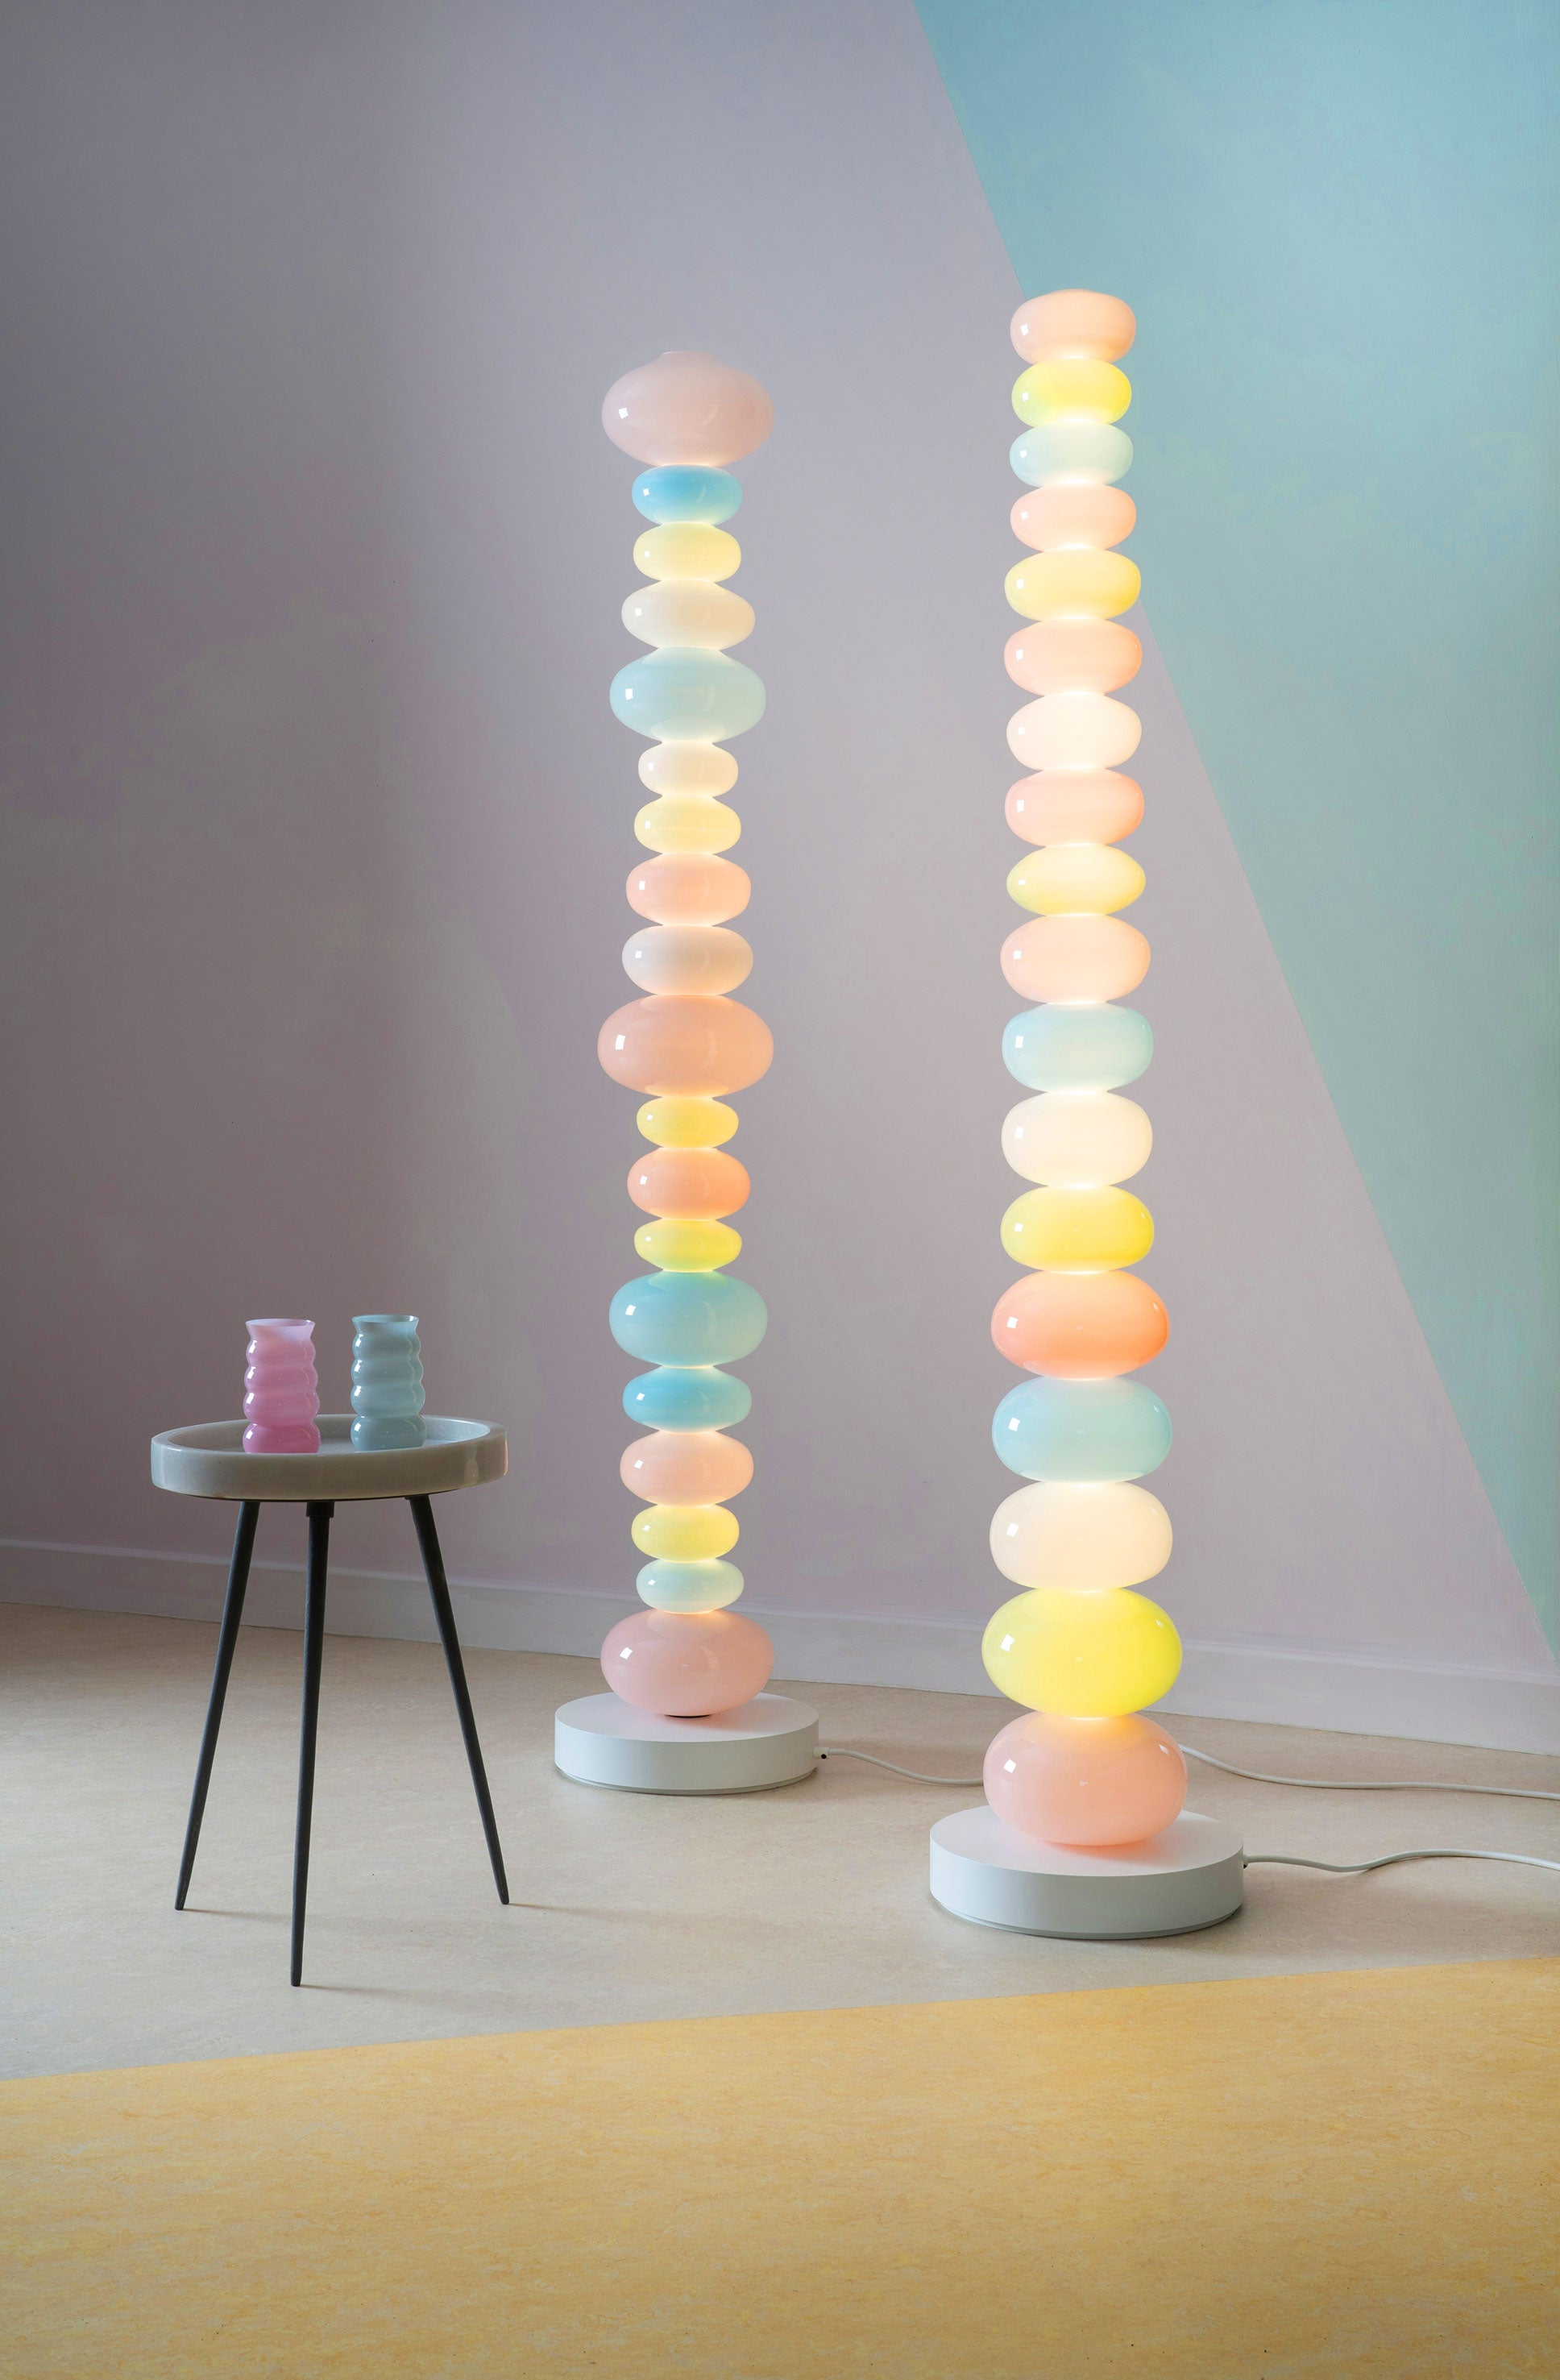 Glowbule Lights, pendants, and lamps, by Adam Nathaniel Furman for Curiousa and Curiousa, handblown, made in the UK